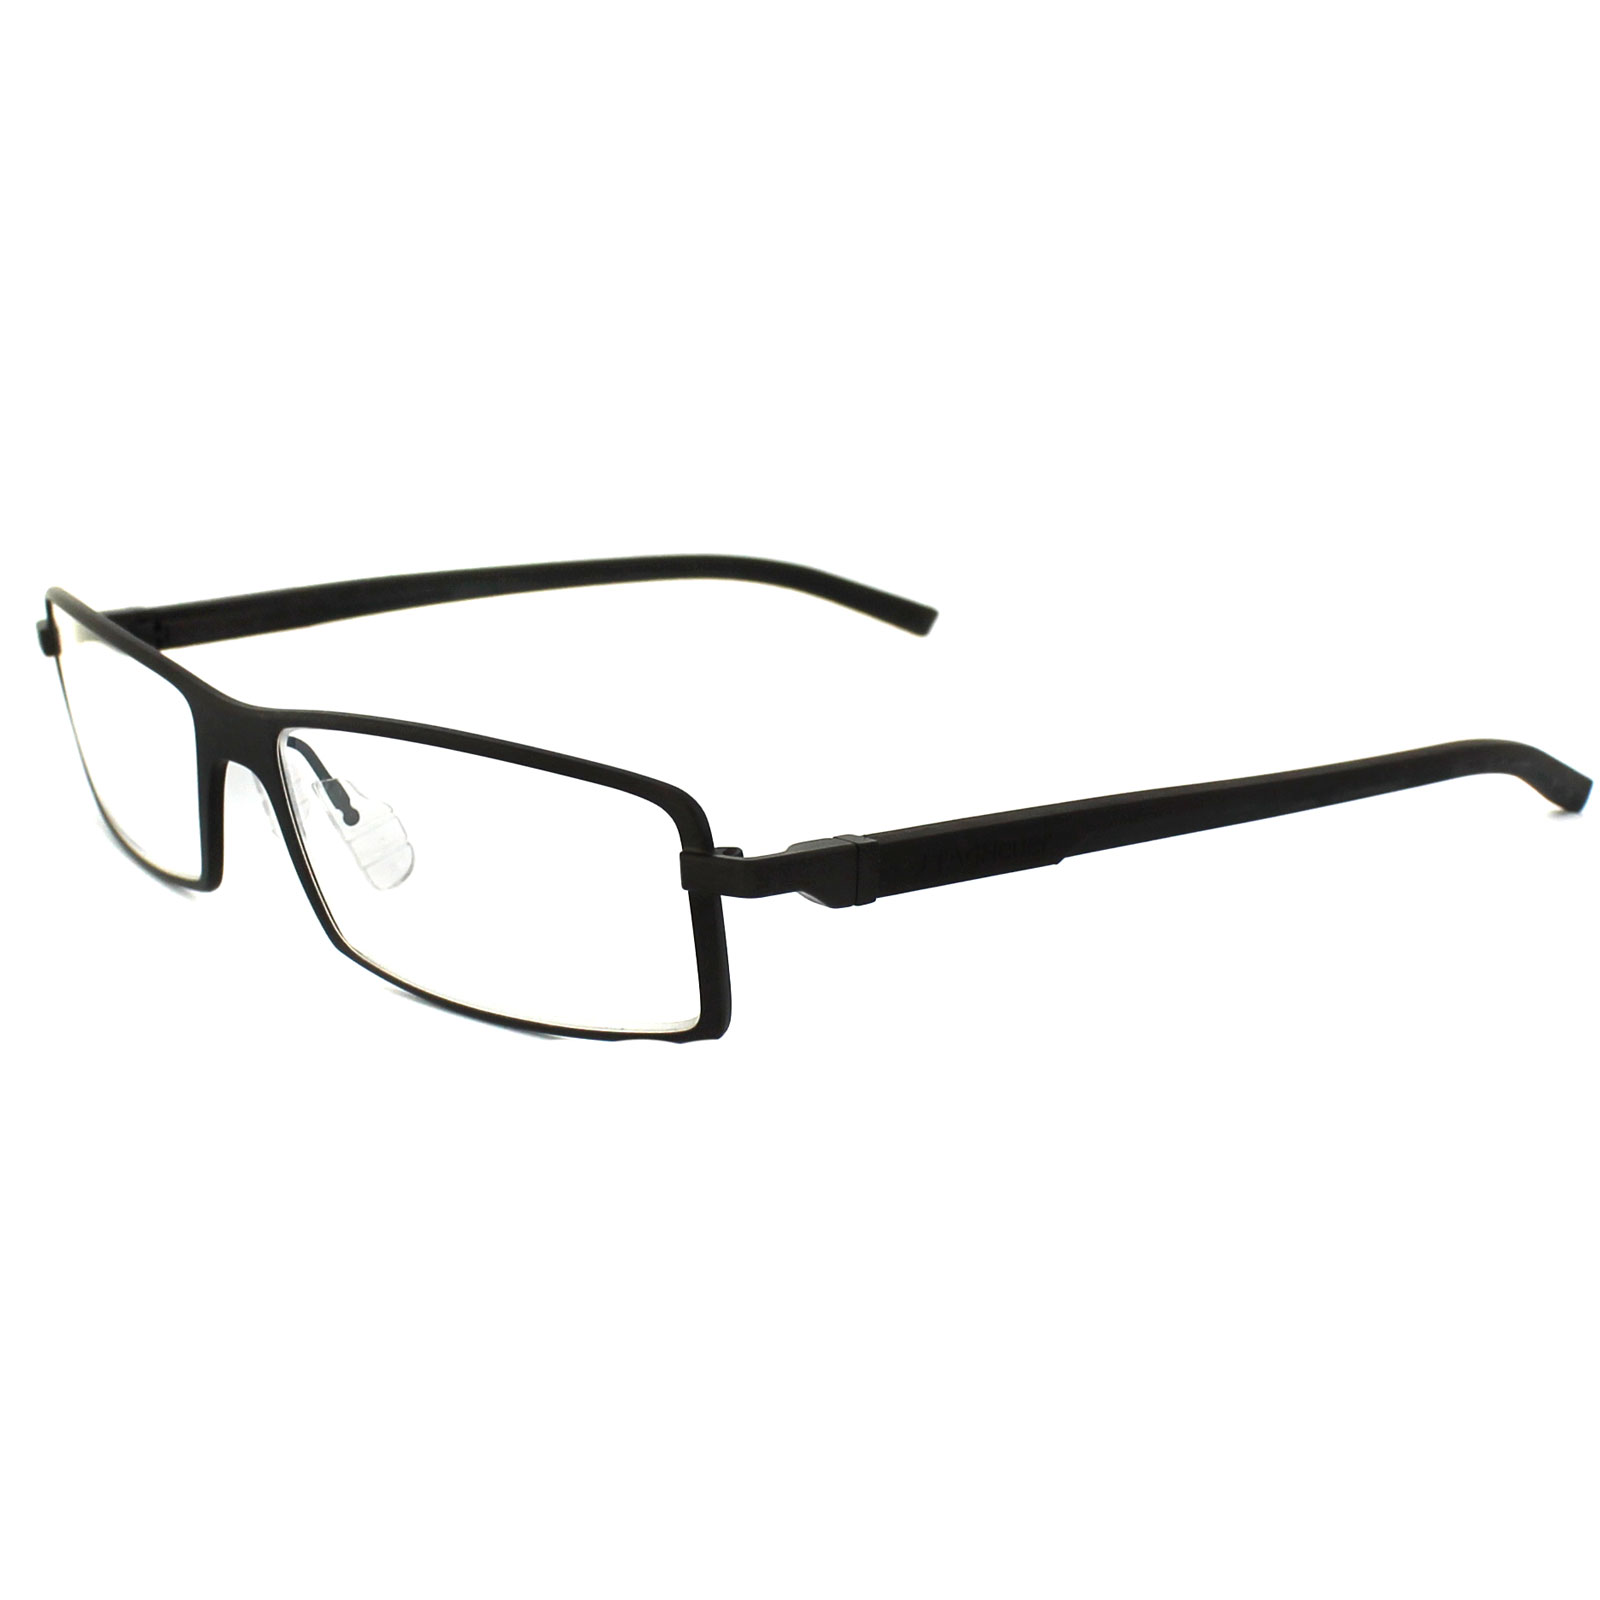 Eyeglasses Frames Tag Heuer : Tag Heuer Glasses Frames Automatic 0802 003 Matt Chocolate ...